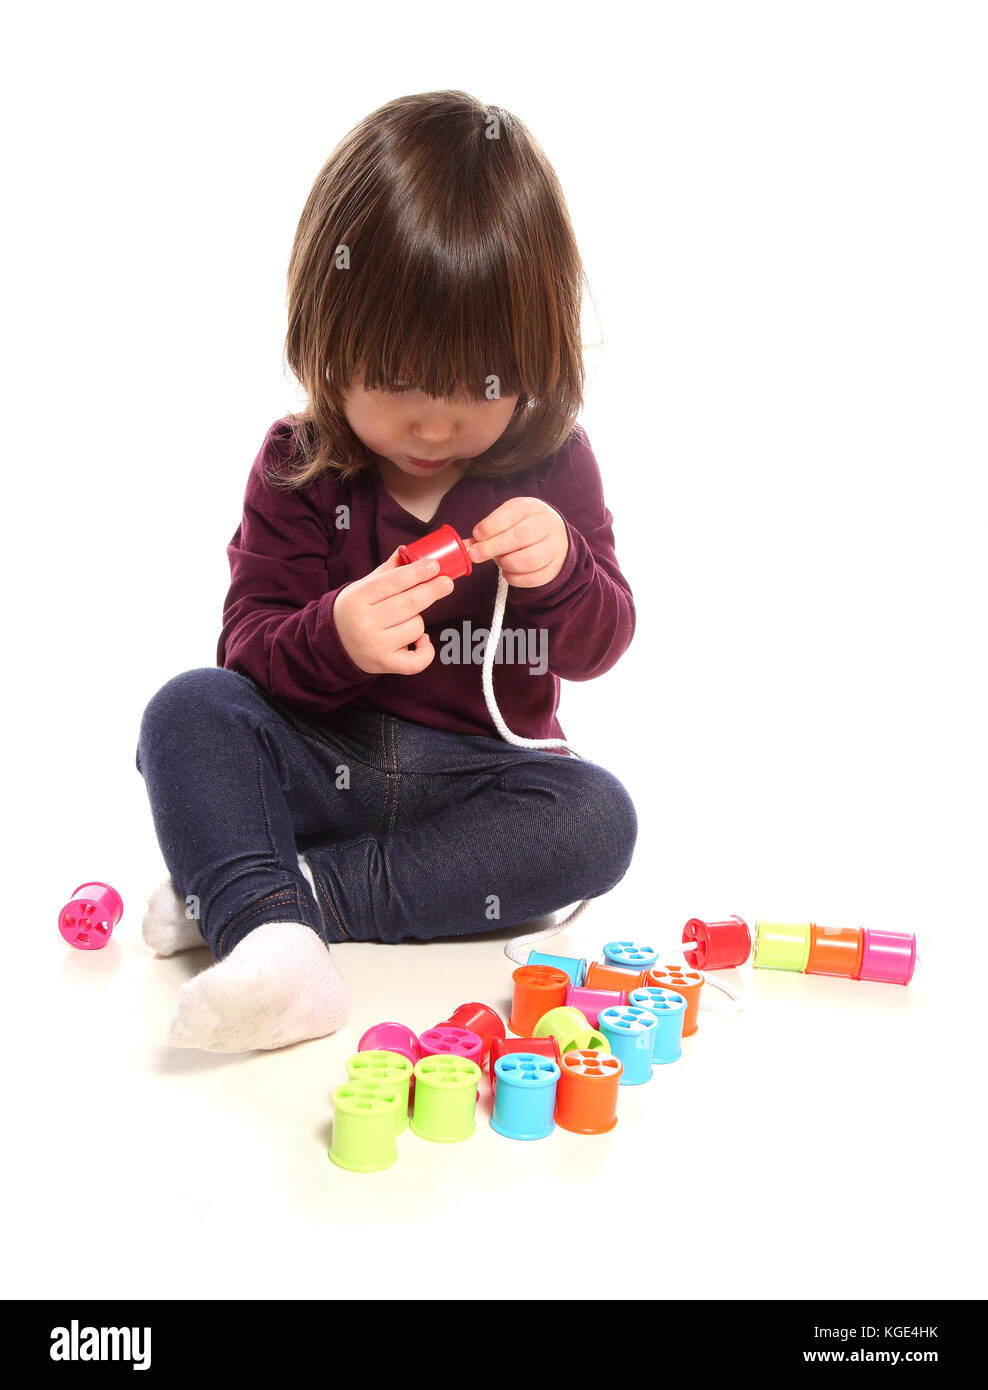 two year old girl playing with cotton reels in studio - Stock Image